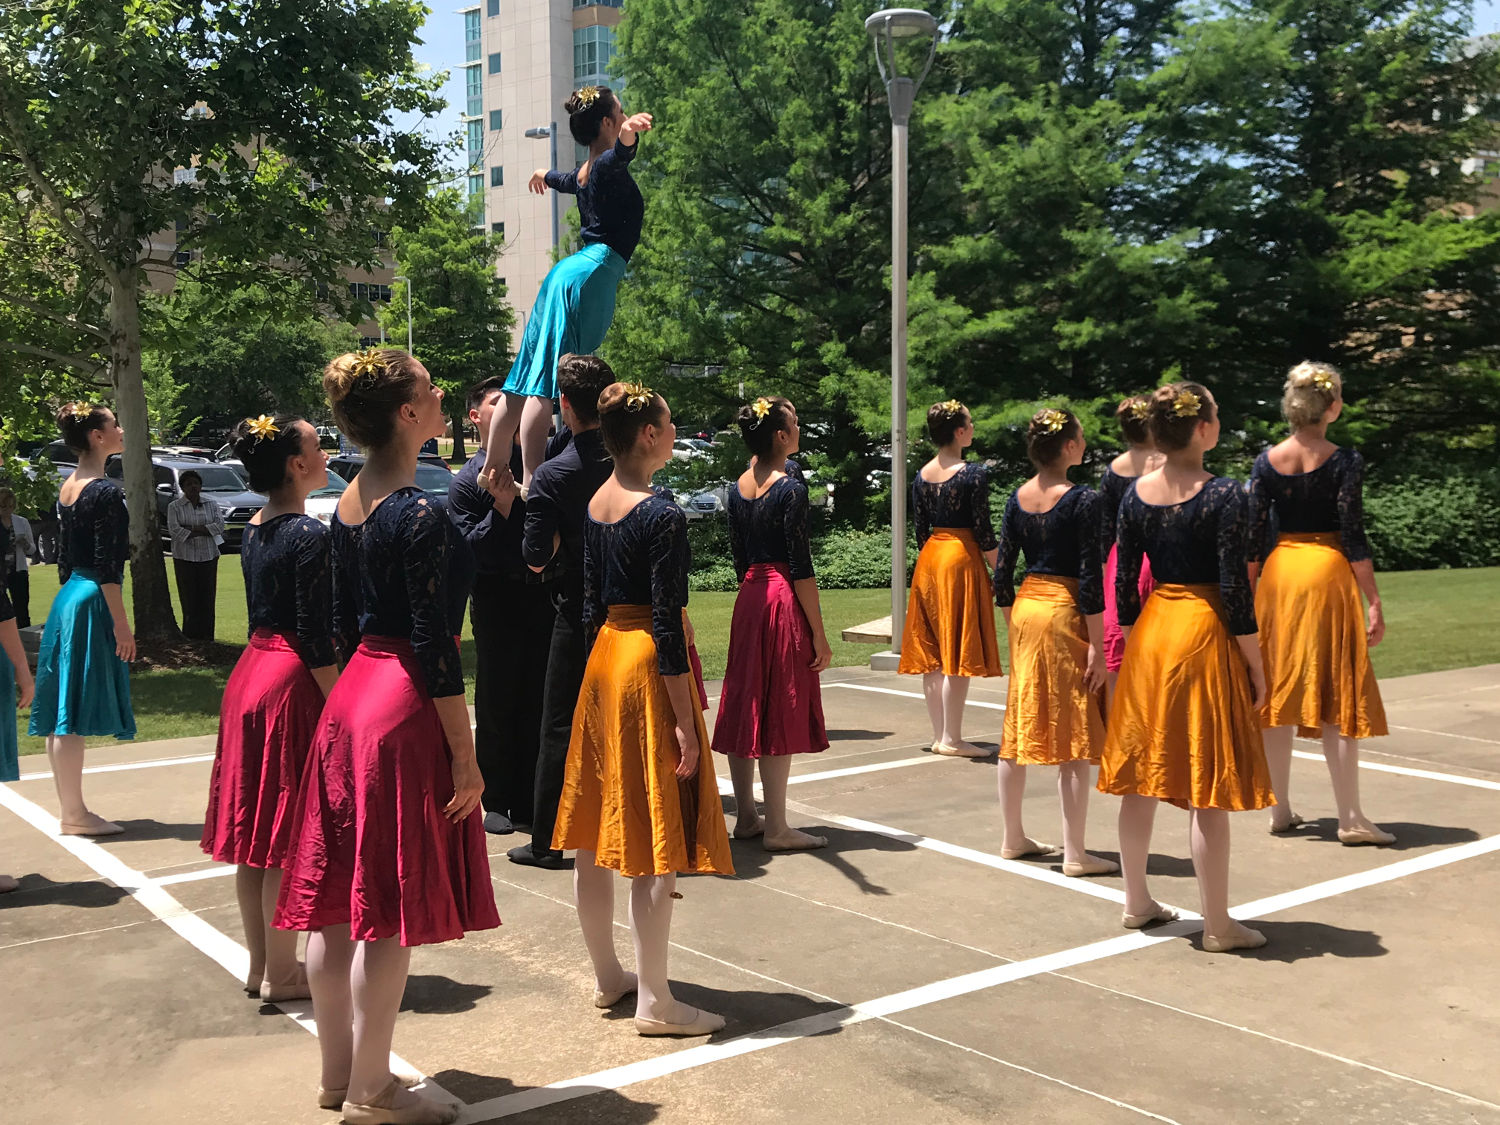 trainee-colorful-skirts-outside.jpg